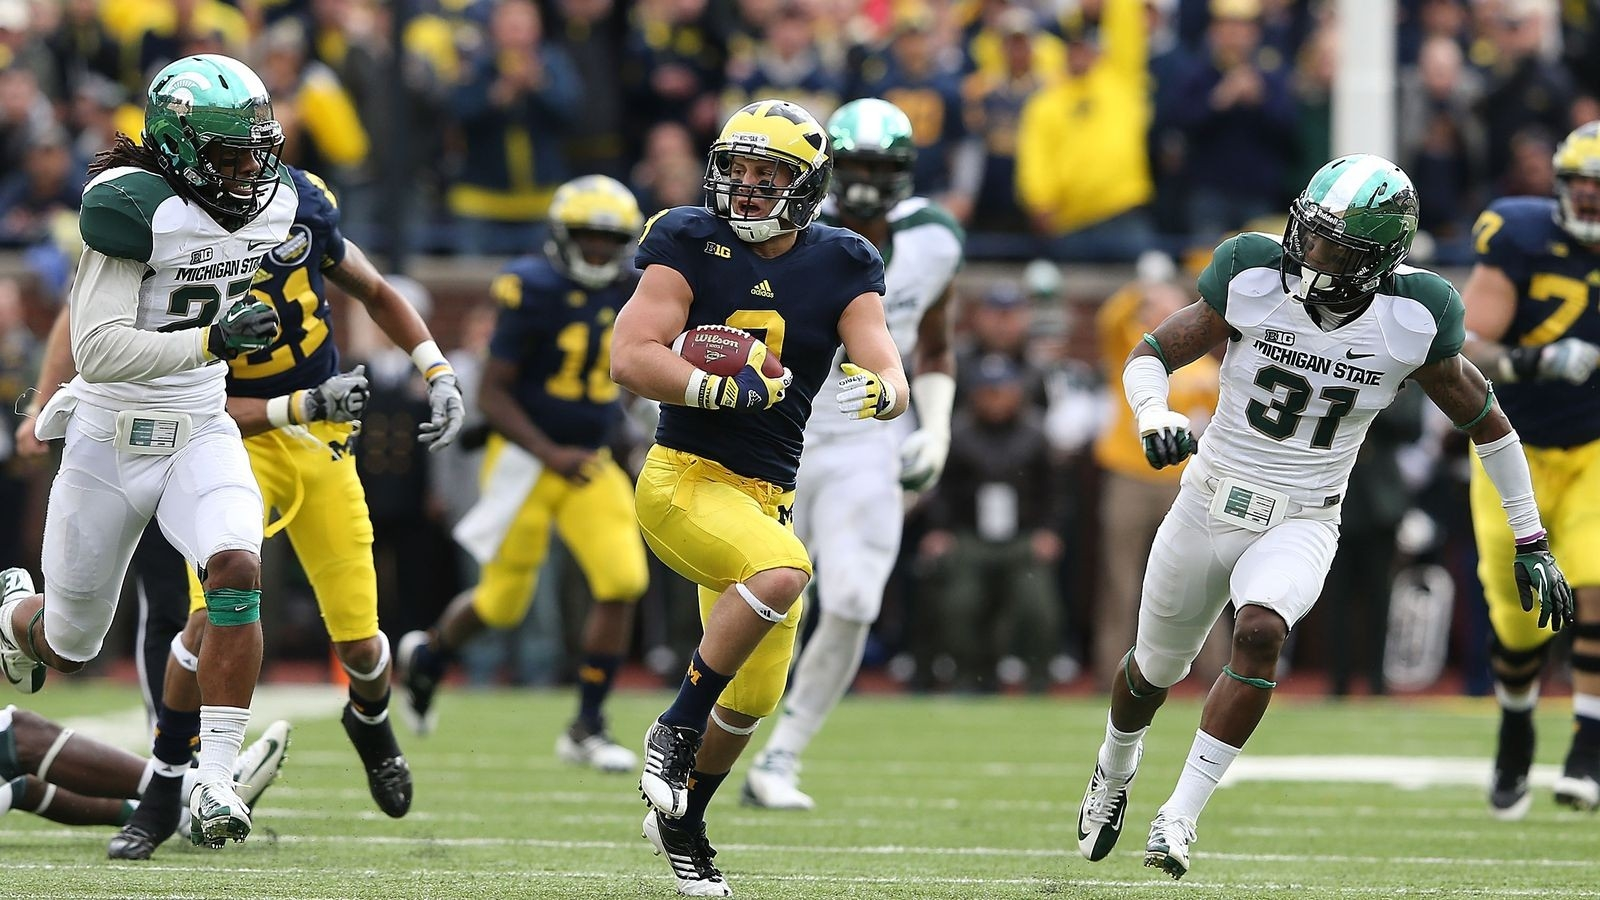 Michigan Vs. Michigan State Game Preview: How To Watch, Score Predictions And More - Maize N Brew-Up Michigan 2021 Rut Predictions